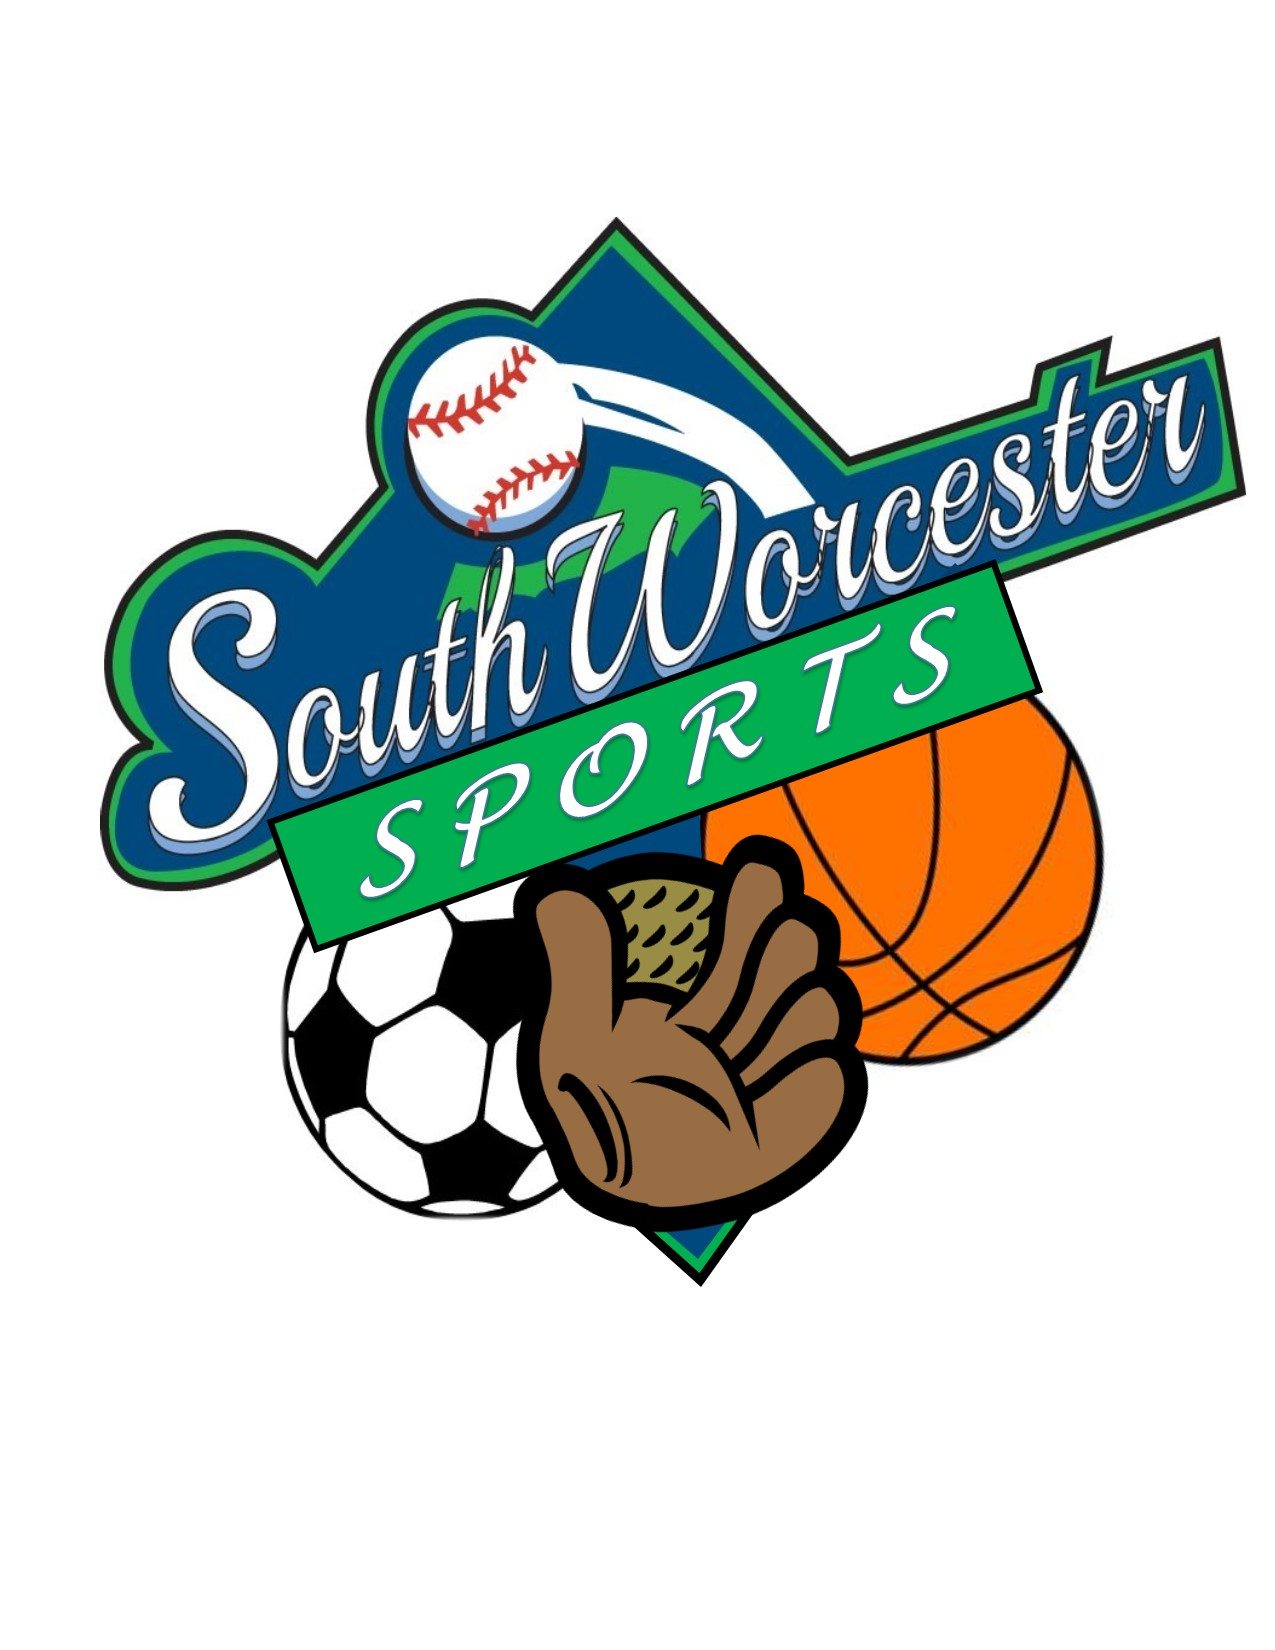 NEW South Worcester Sports logo